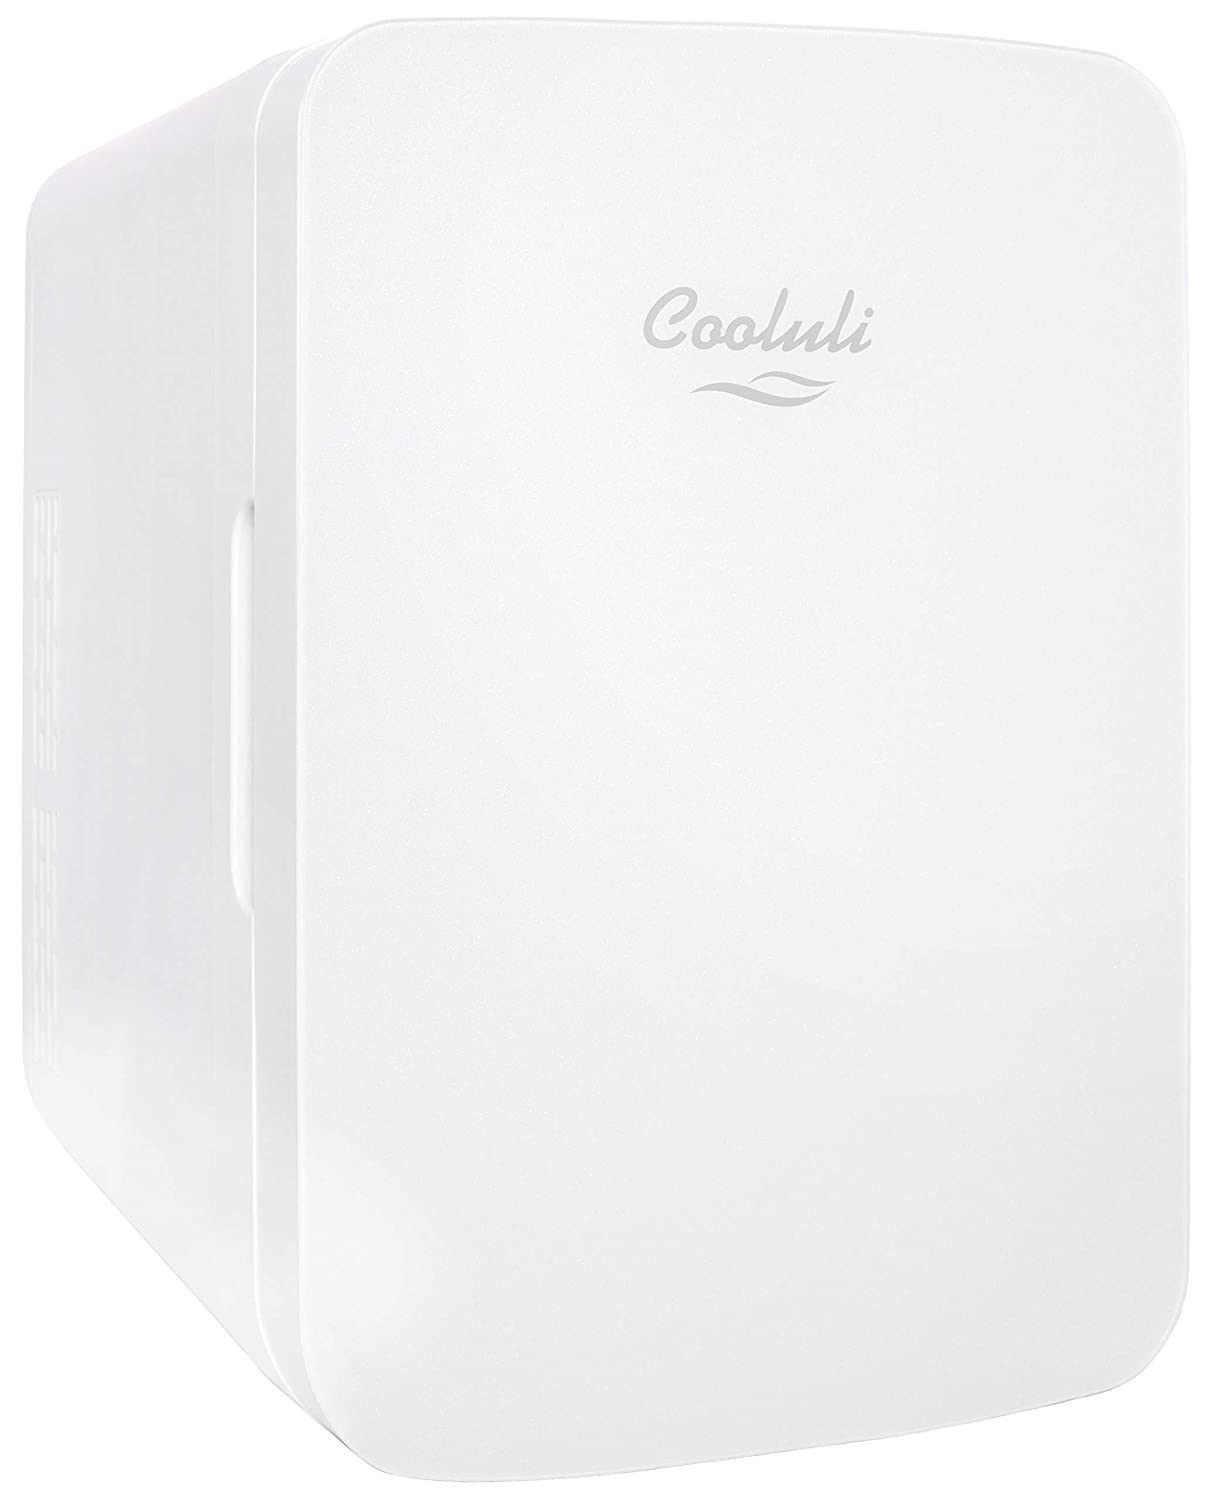 Cooluli Infinity 10-liter Compact Cooler/Warmer Mini Fridge for Cars, Road Trips, Homes, Offices, and Dorms (White)